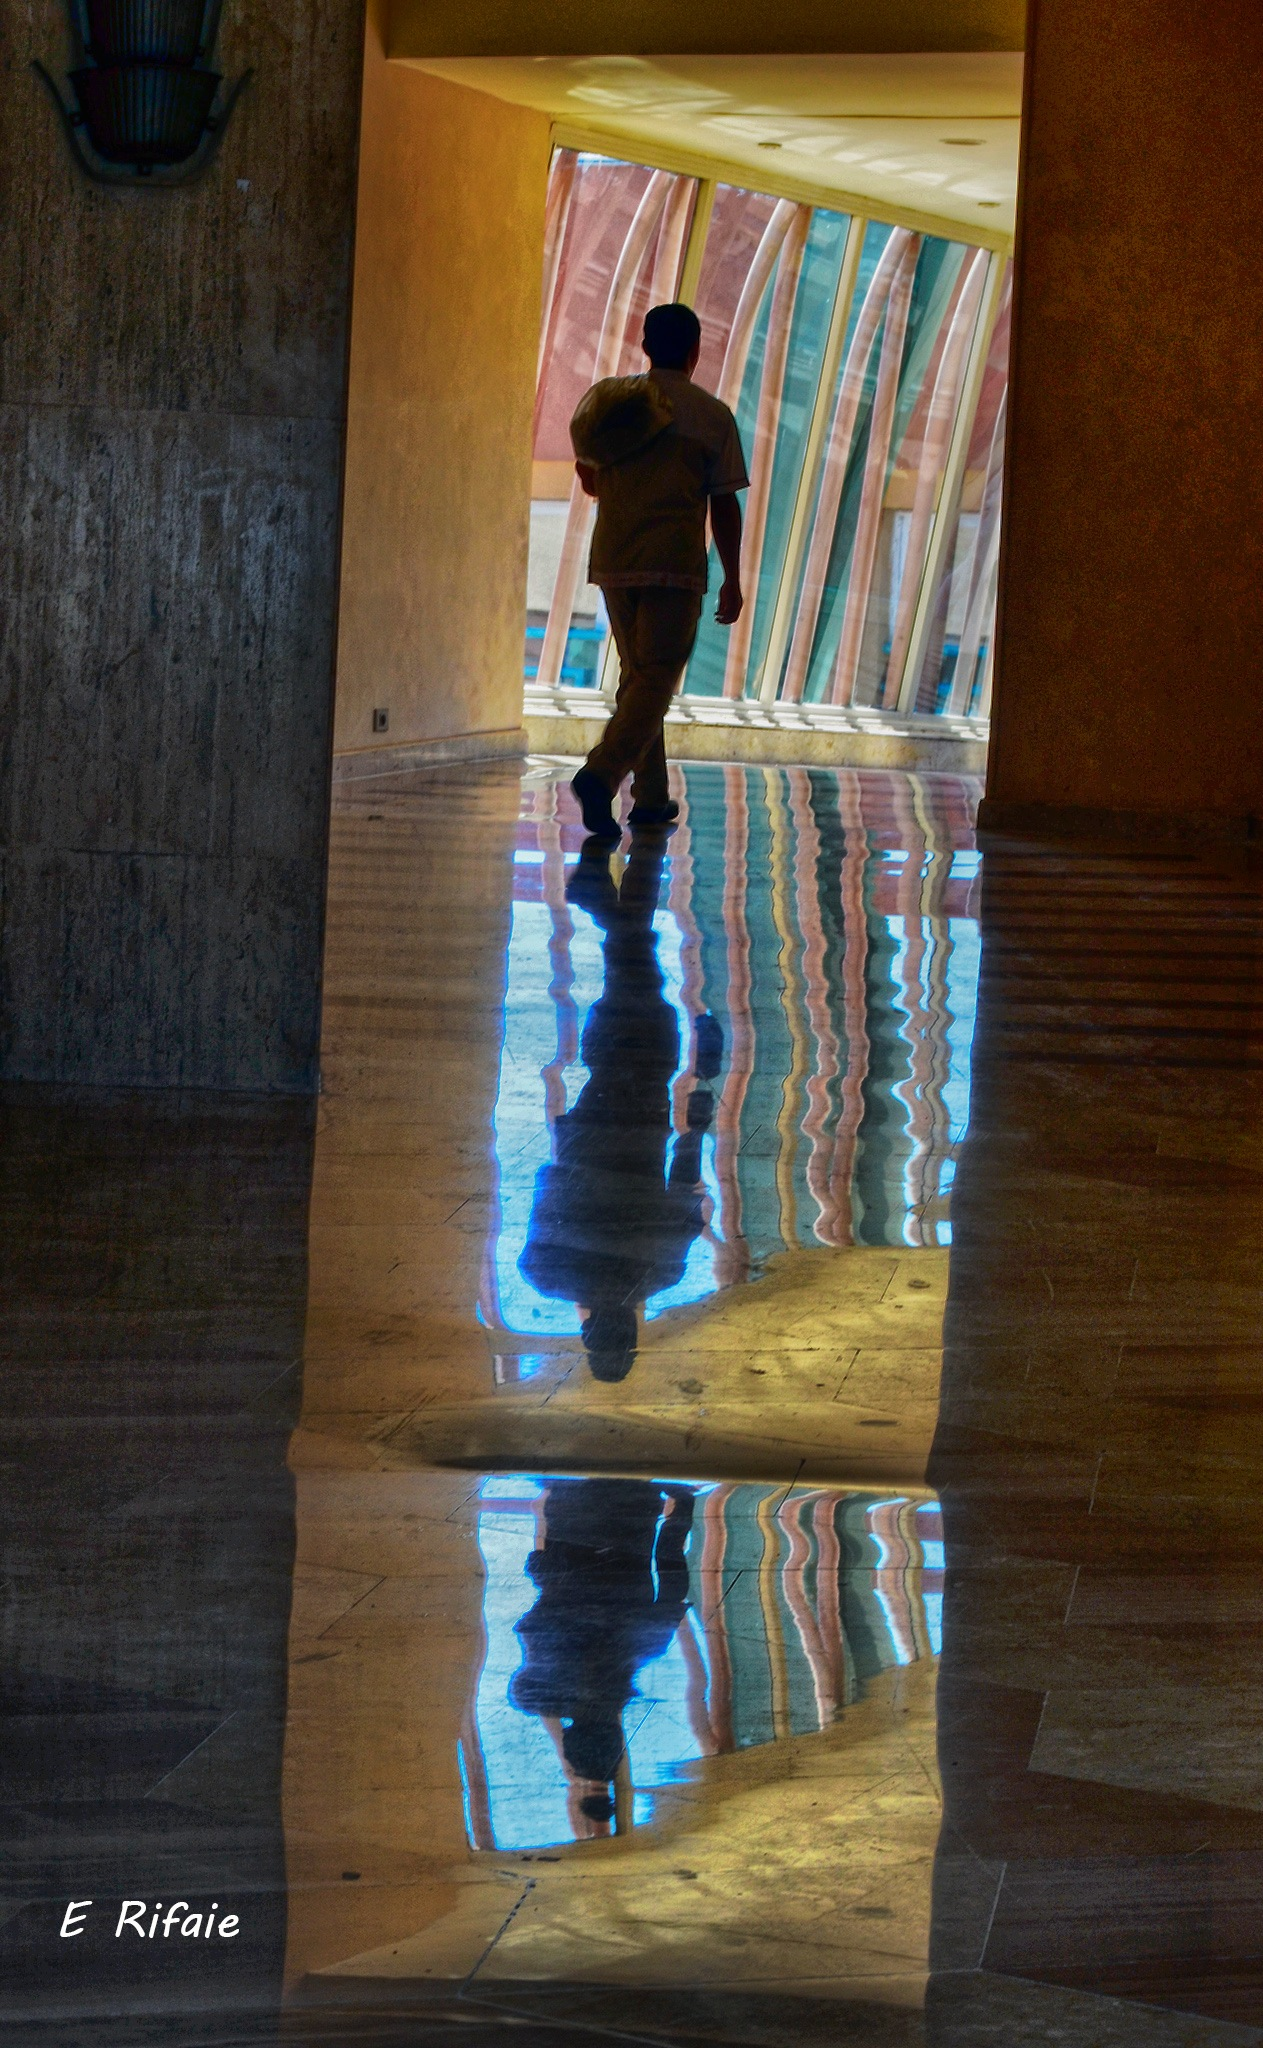 Shadows and reflection by Emad Eldin Moustafa El Refaie